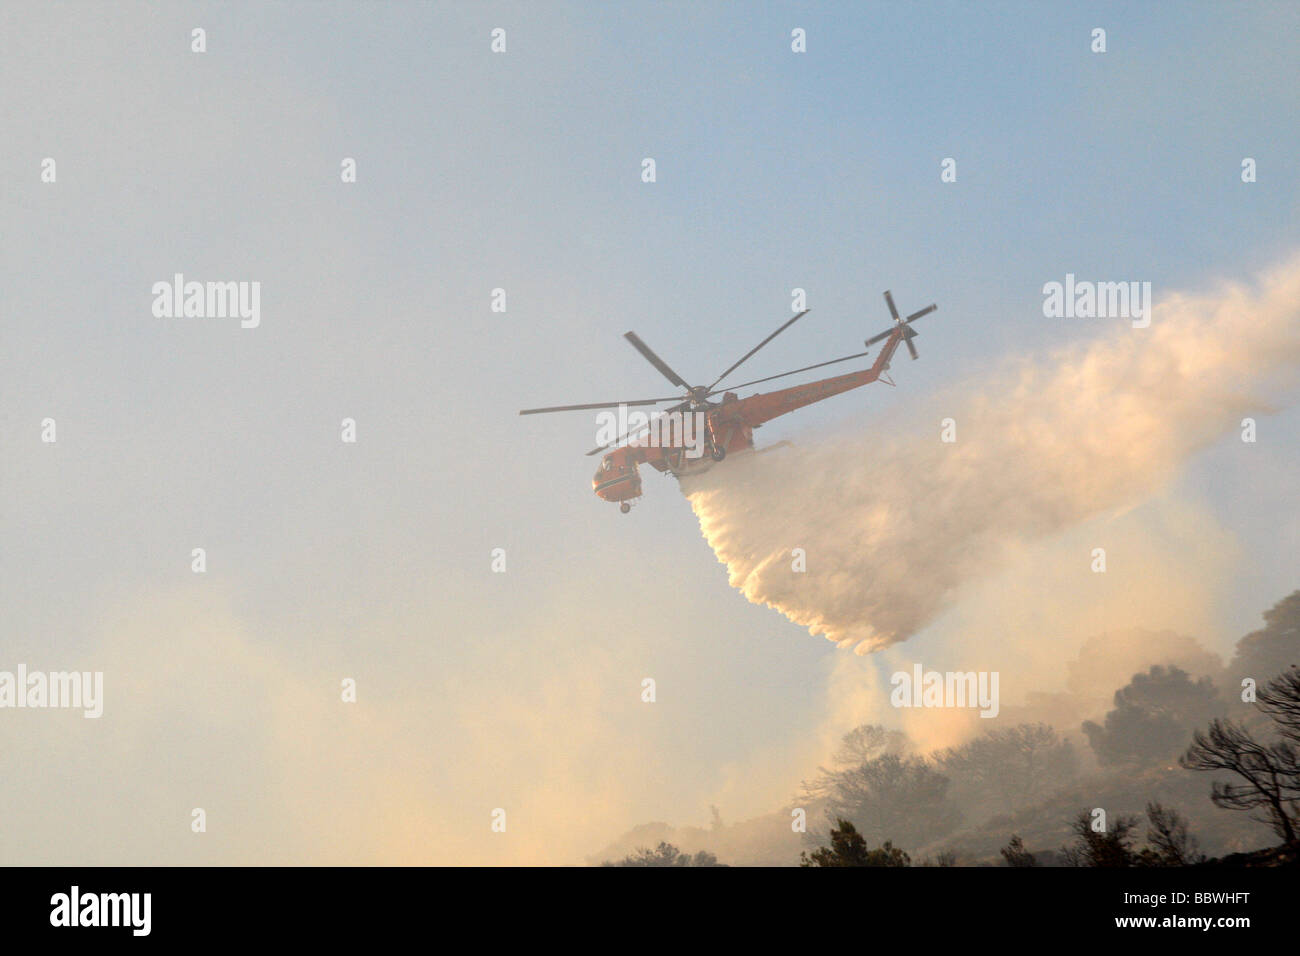 erickson air crane helicopter with Stock Photo Firefighting Helicopter Erickson Air Crane 24534156 on 12051136 furthermore 38 additionally 18425519 as well 181723 also 1586487.